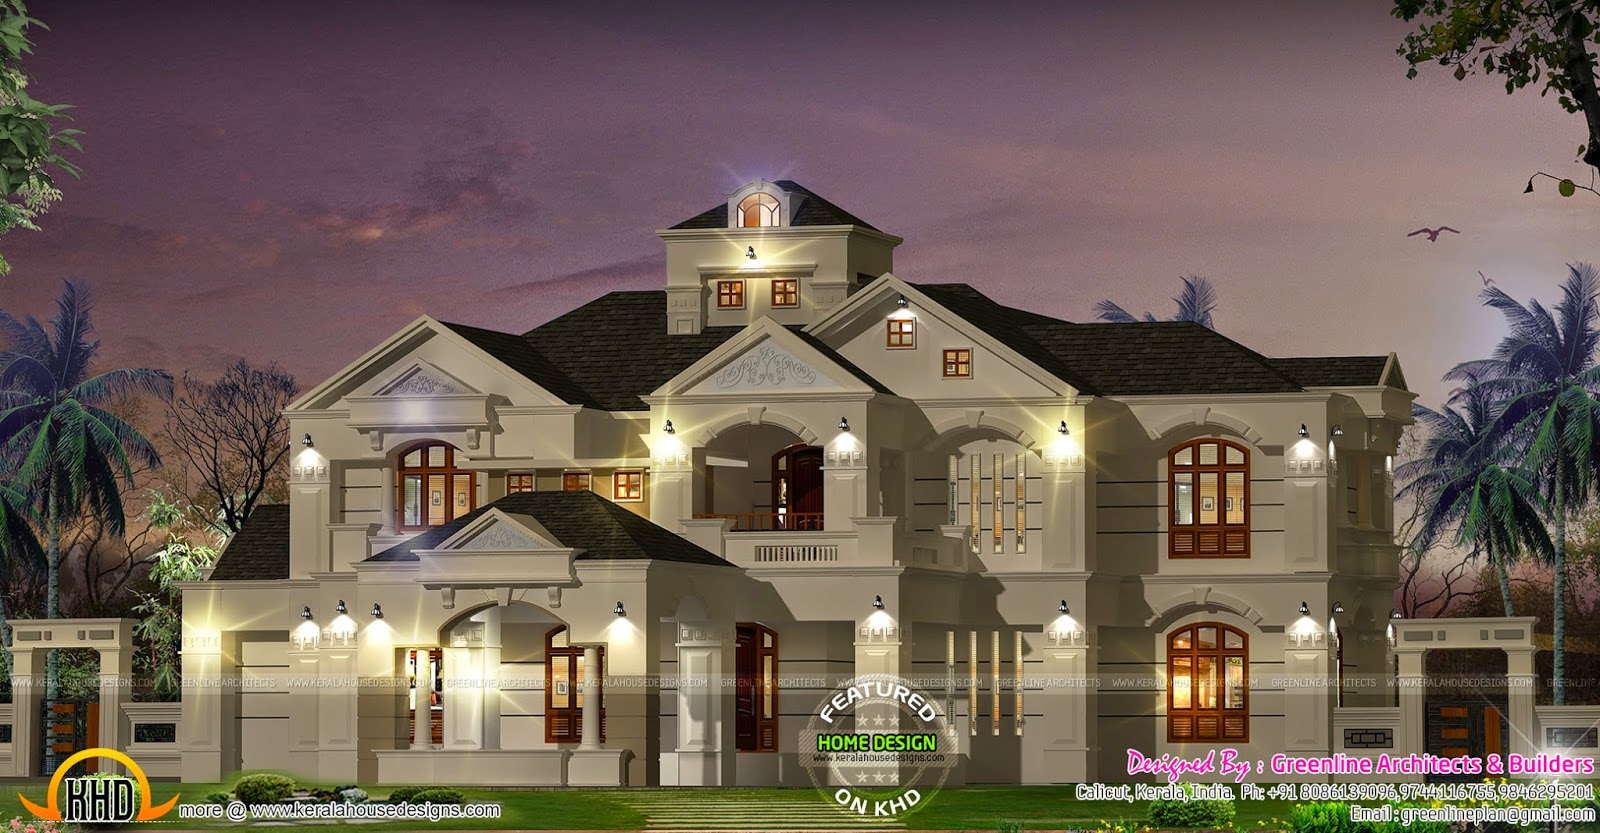 5 Bedroom Colonial Style Luxury Villa Kerala Home Design: colonial style homes floor plans